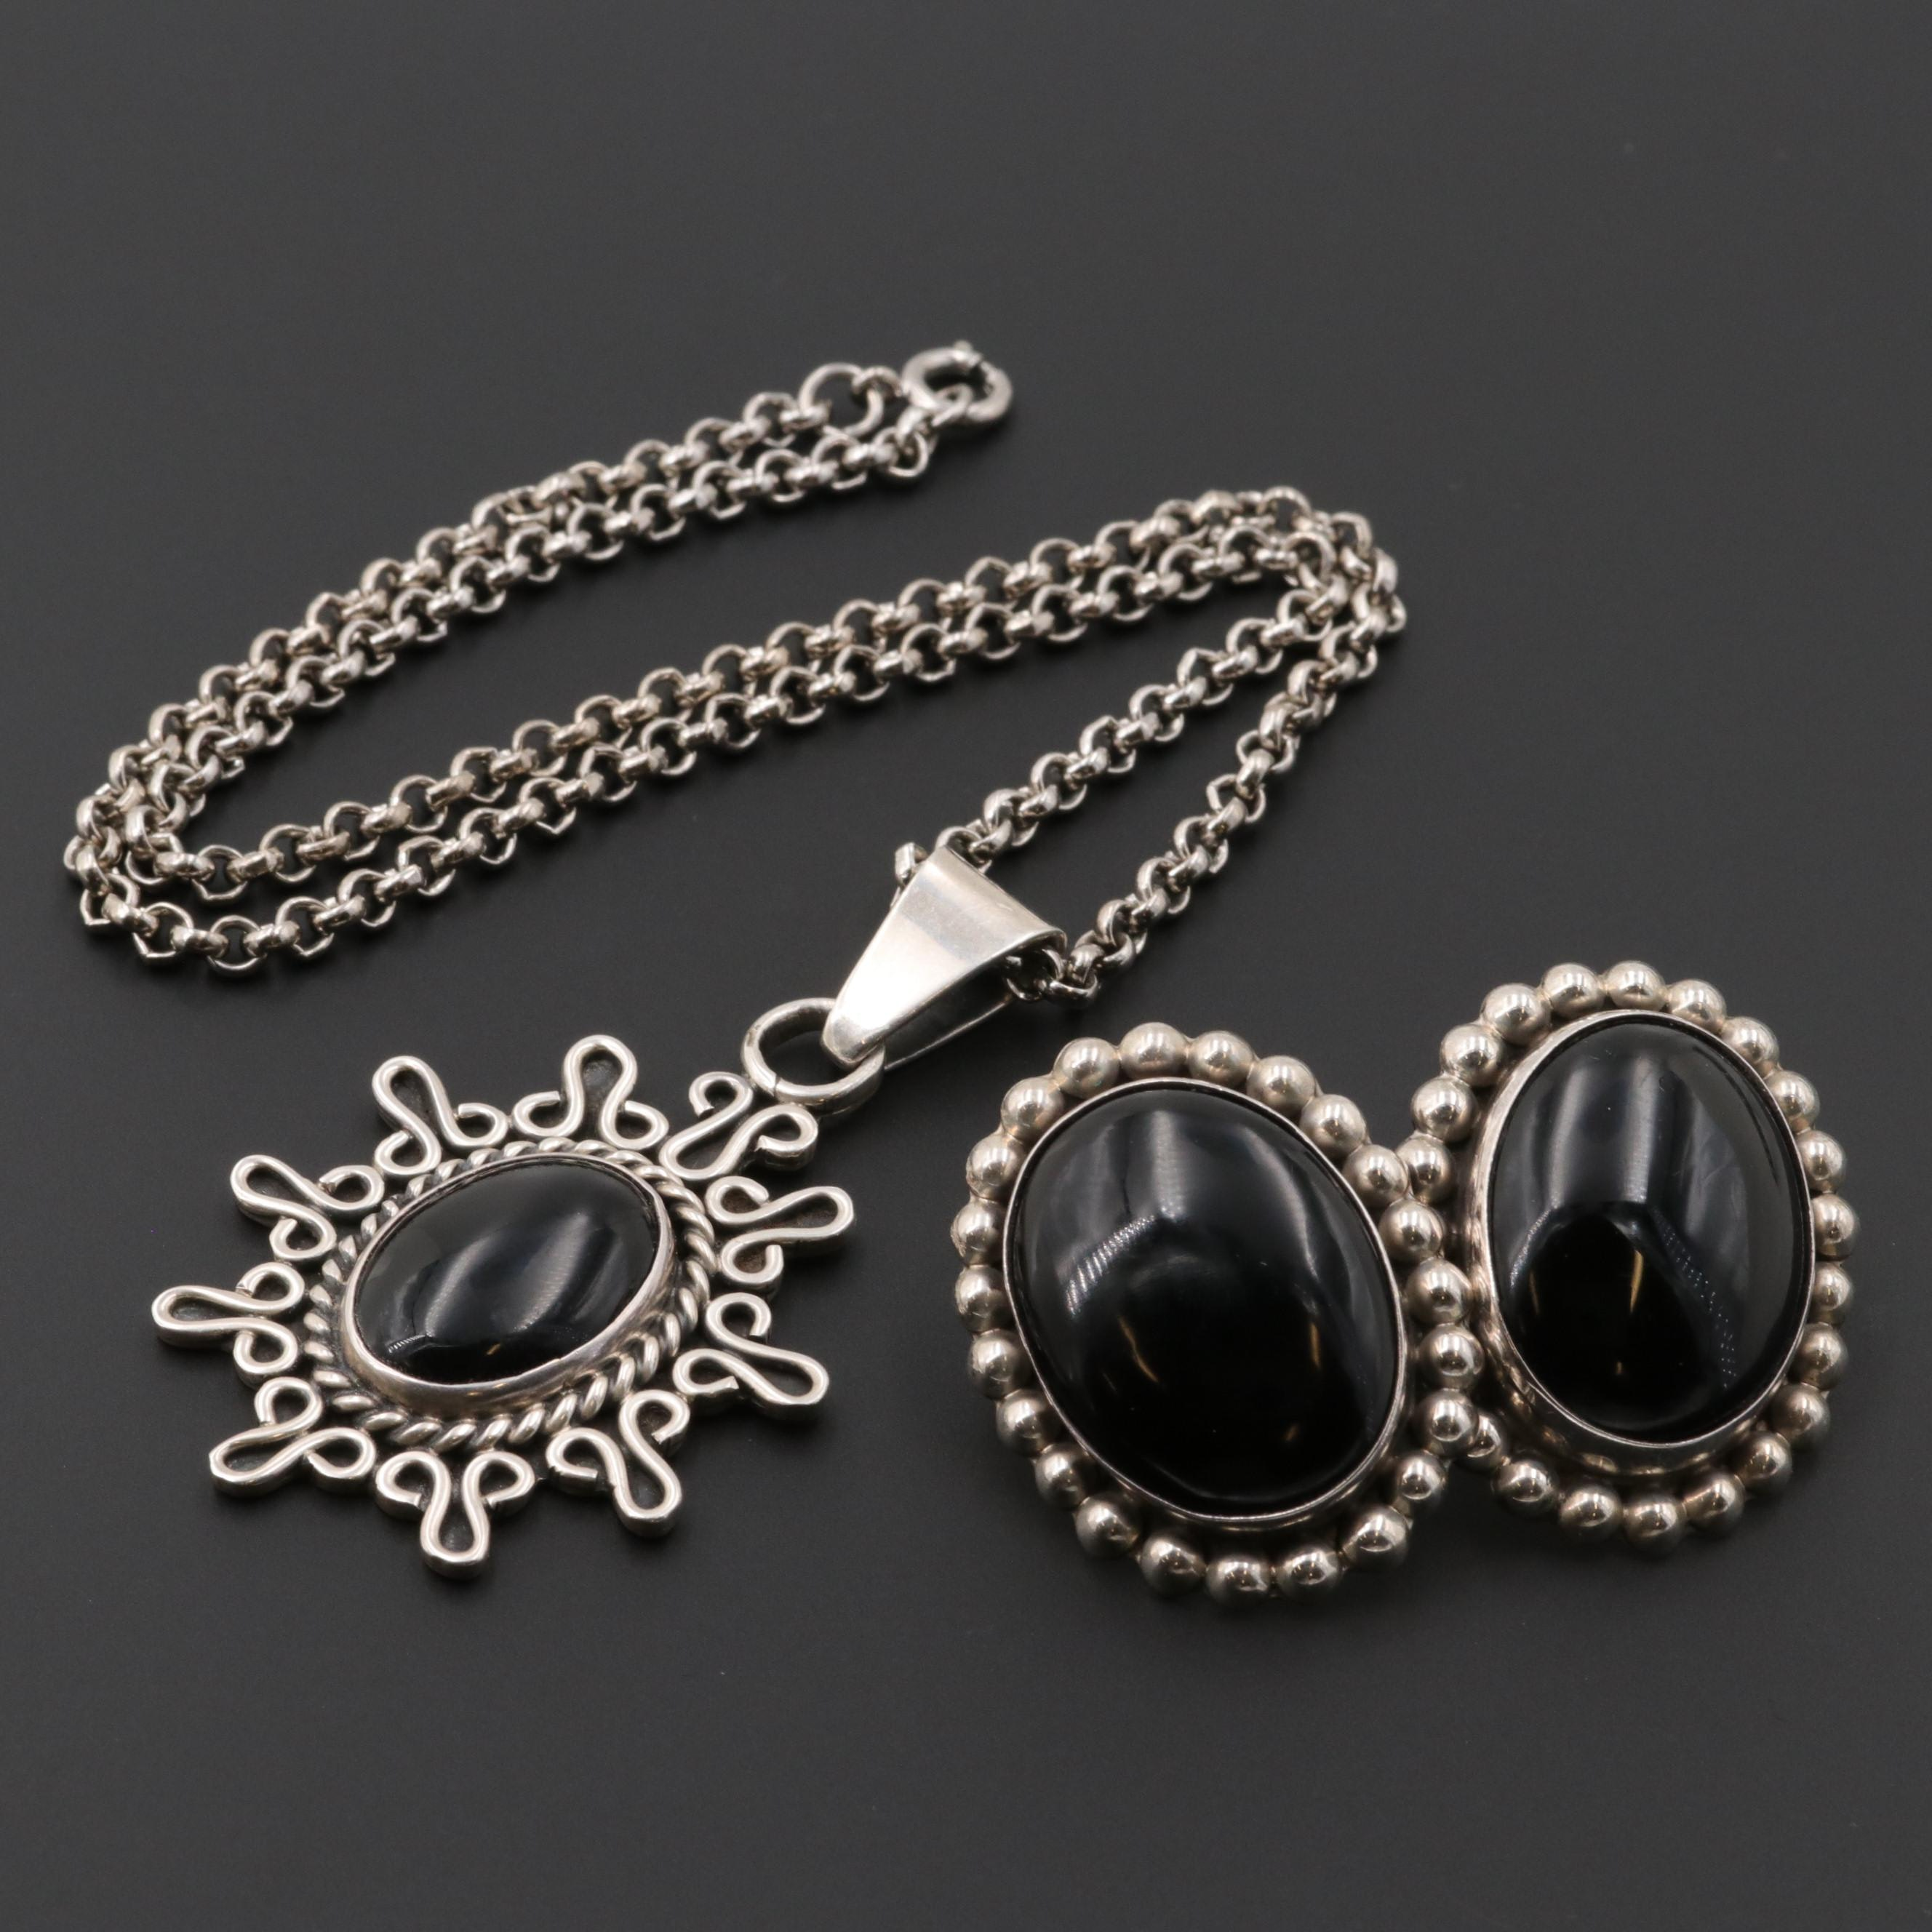 Mexican Sterling Silver Obsidian and Black Onyx Earrings and Pendant Necklace